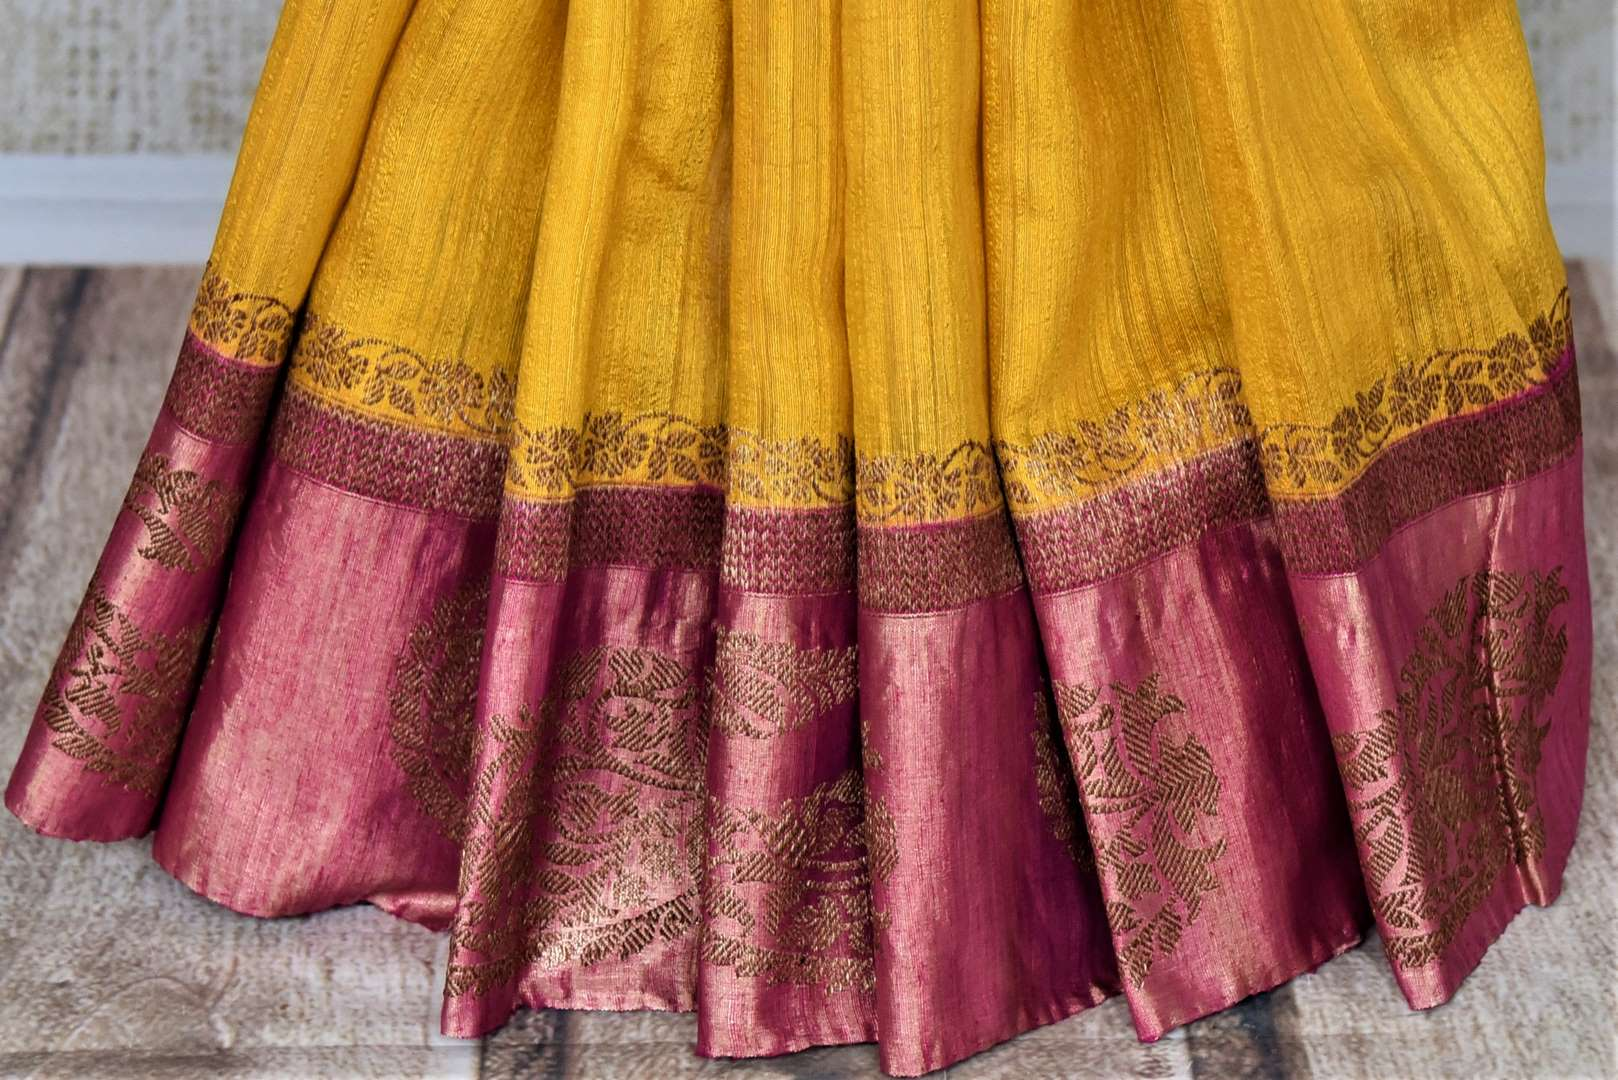 Buy bright yellow tussar Banarsi saree online in USA with zari work on pink border. Choose tasteful handloom sarees for special occasions from Pure Elegance. Our exclusive Indian fashion store has a myriad of exquisite pure silk saris, tussar sarees, Banarasi sarees for Indian women in USA.-pleats